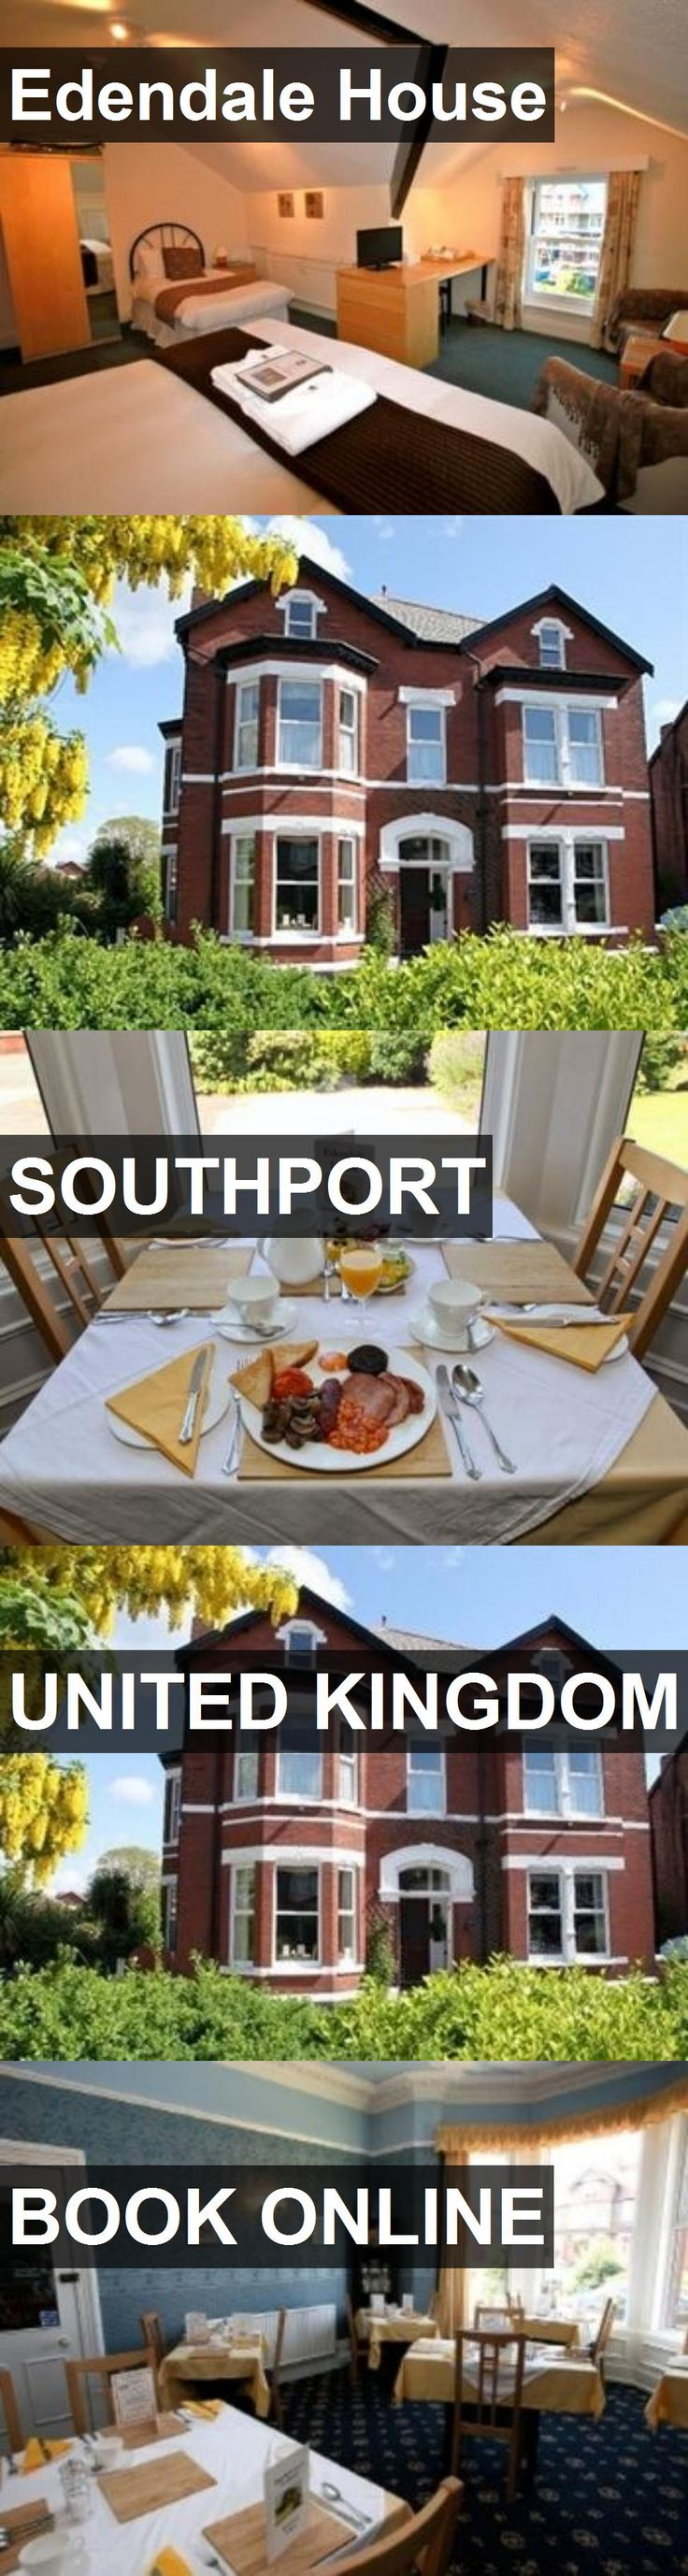 Hotel Edendale House in Southport, United Kingdom. For more information, photos, reviews and best prices please follow the link. #UnitedKingdom #Southport #travel #vacation #hotel